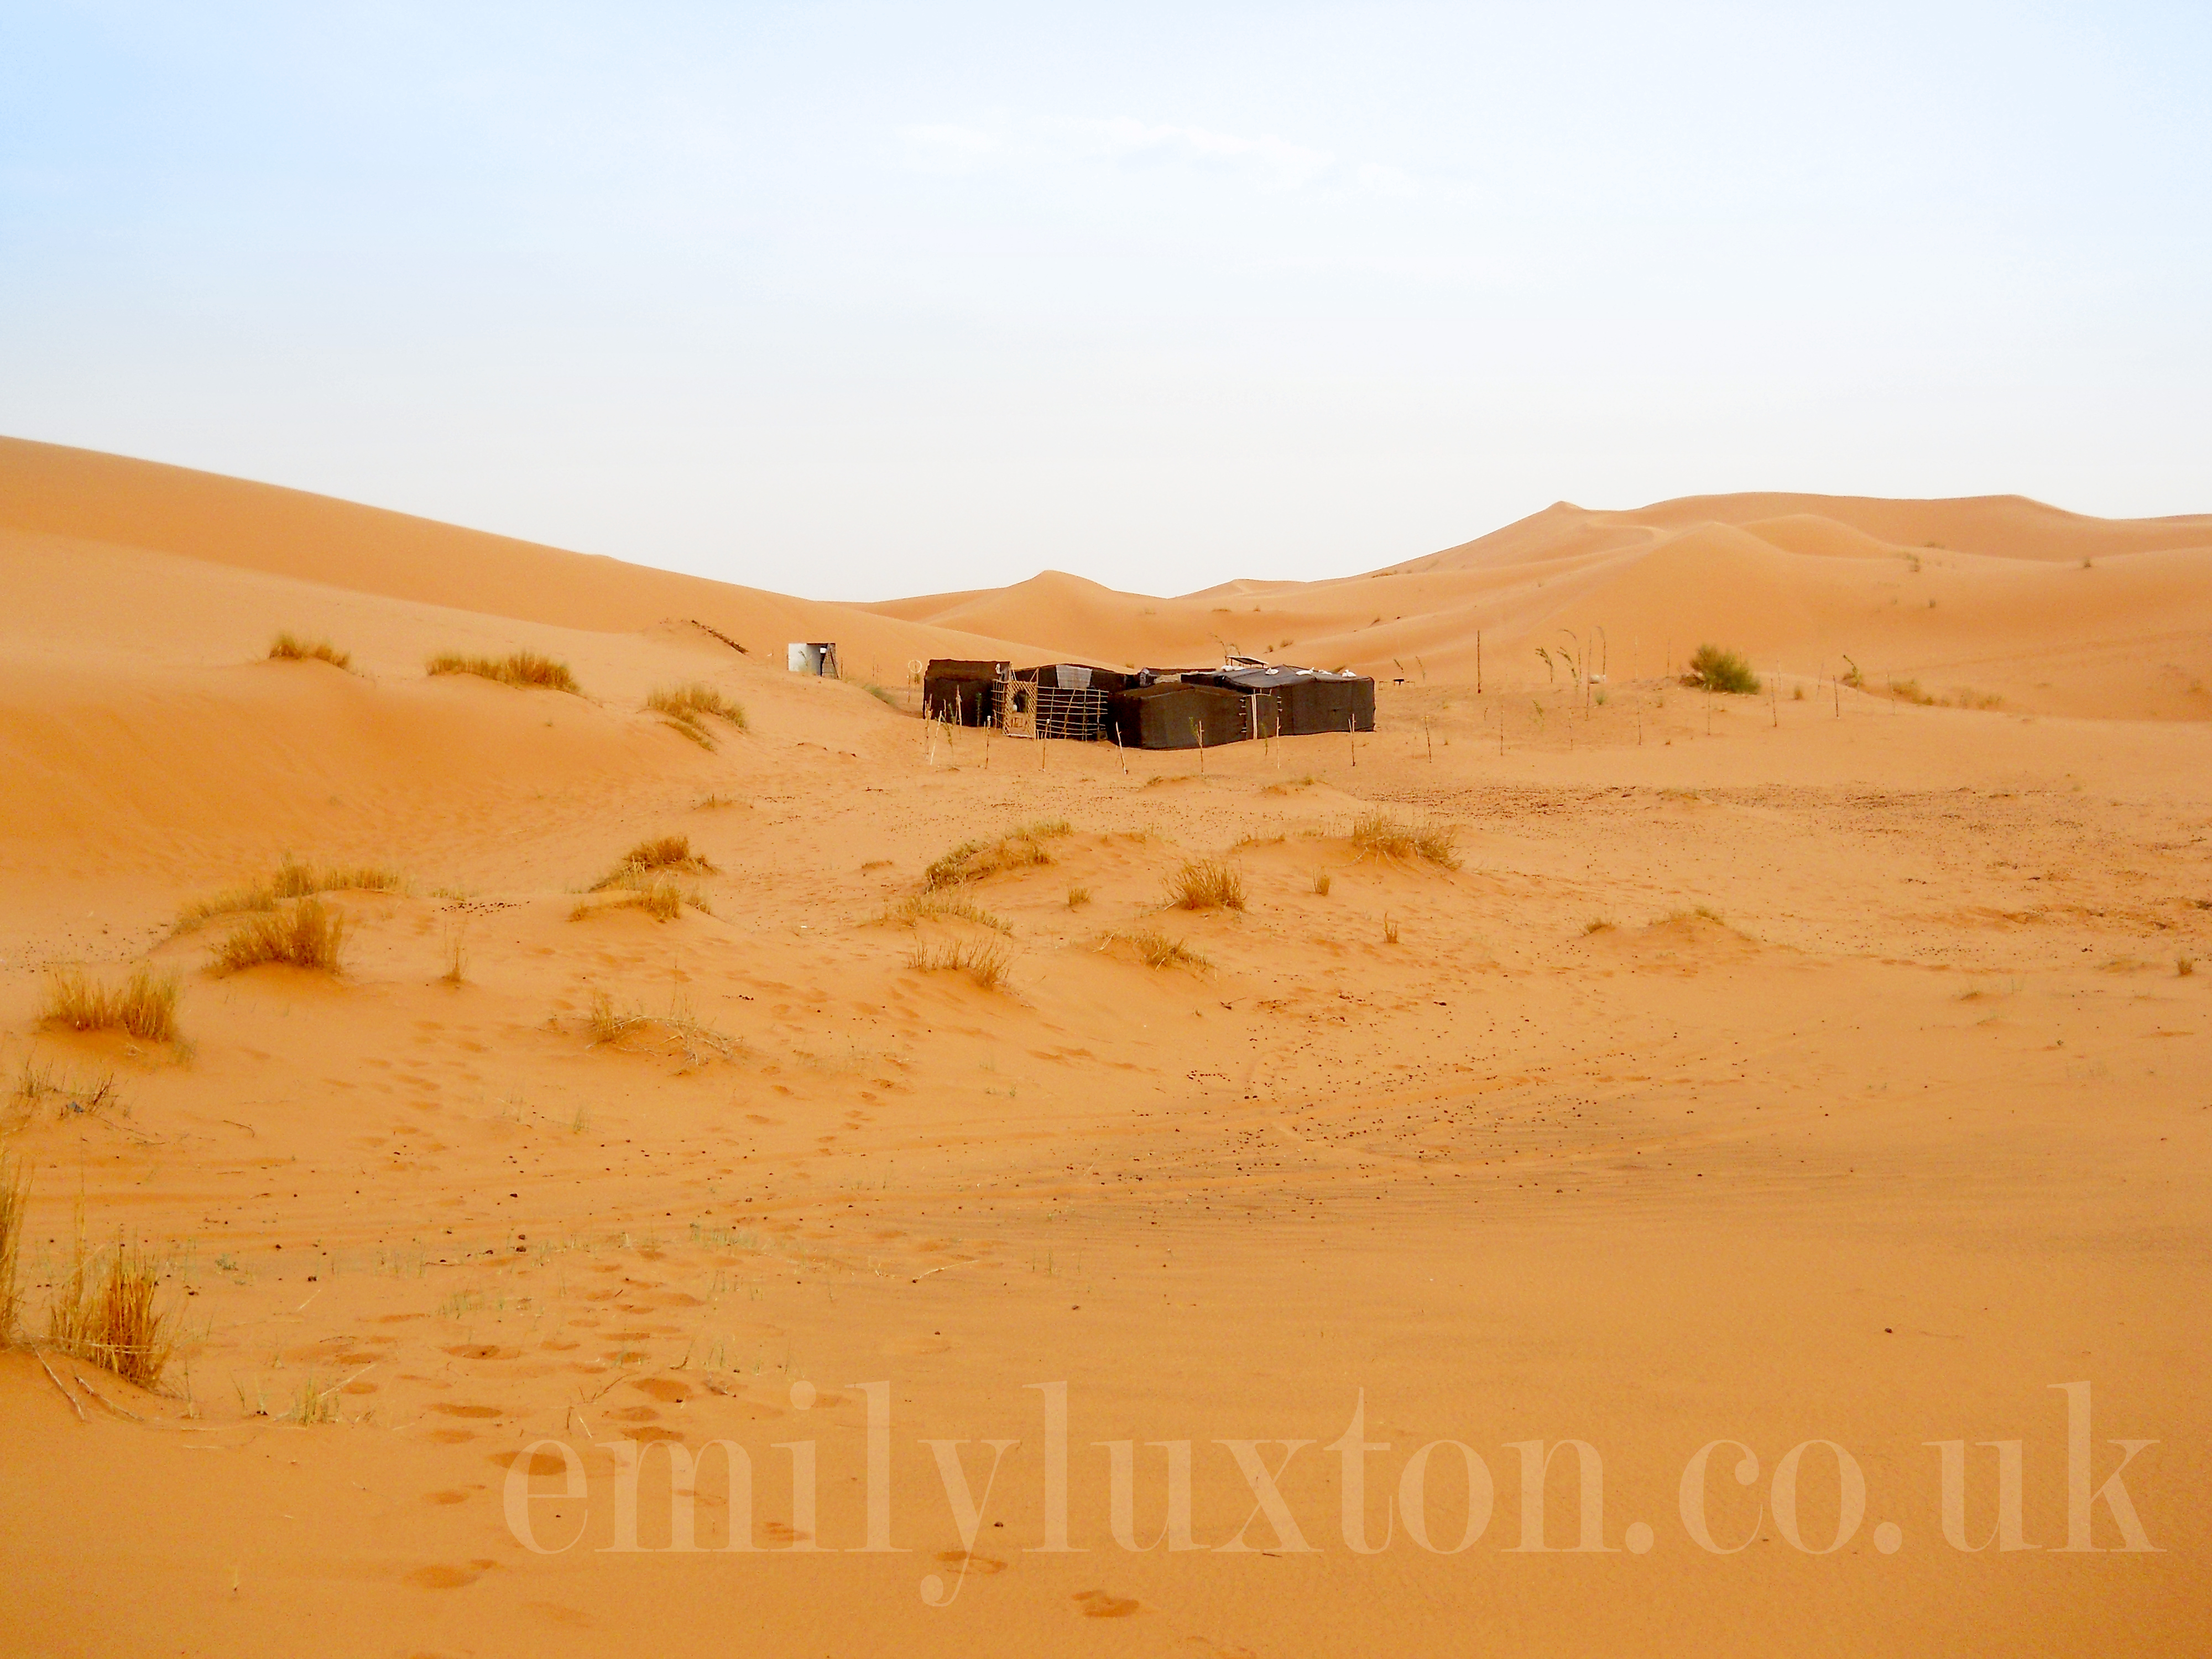 Camel Trek and Camping in Merzouga, Morocco